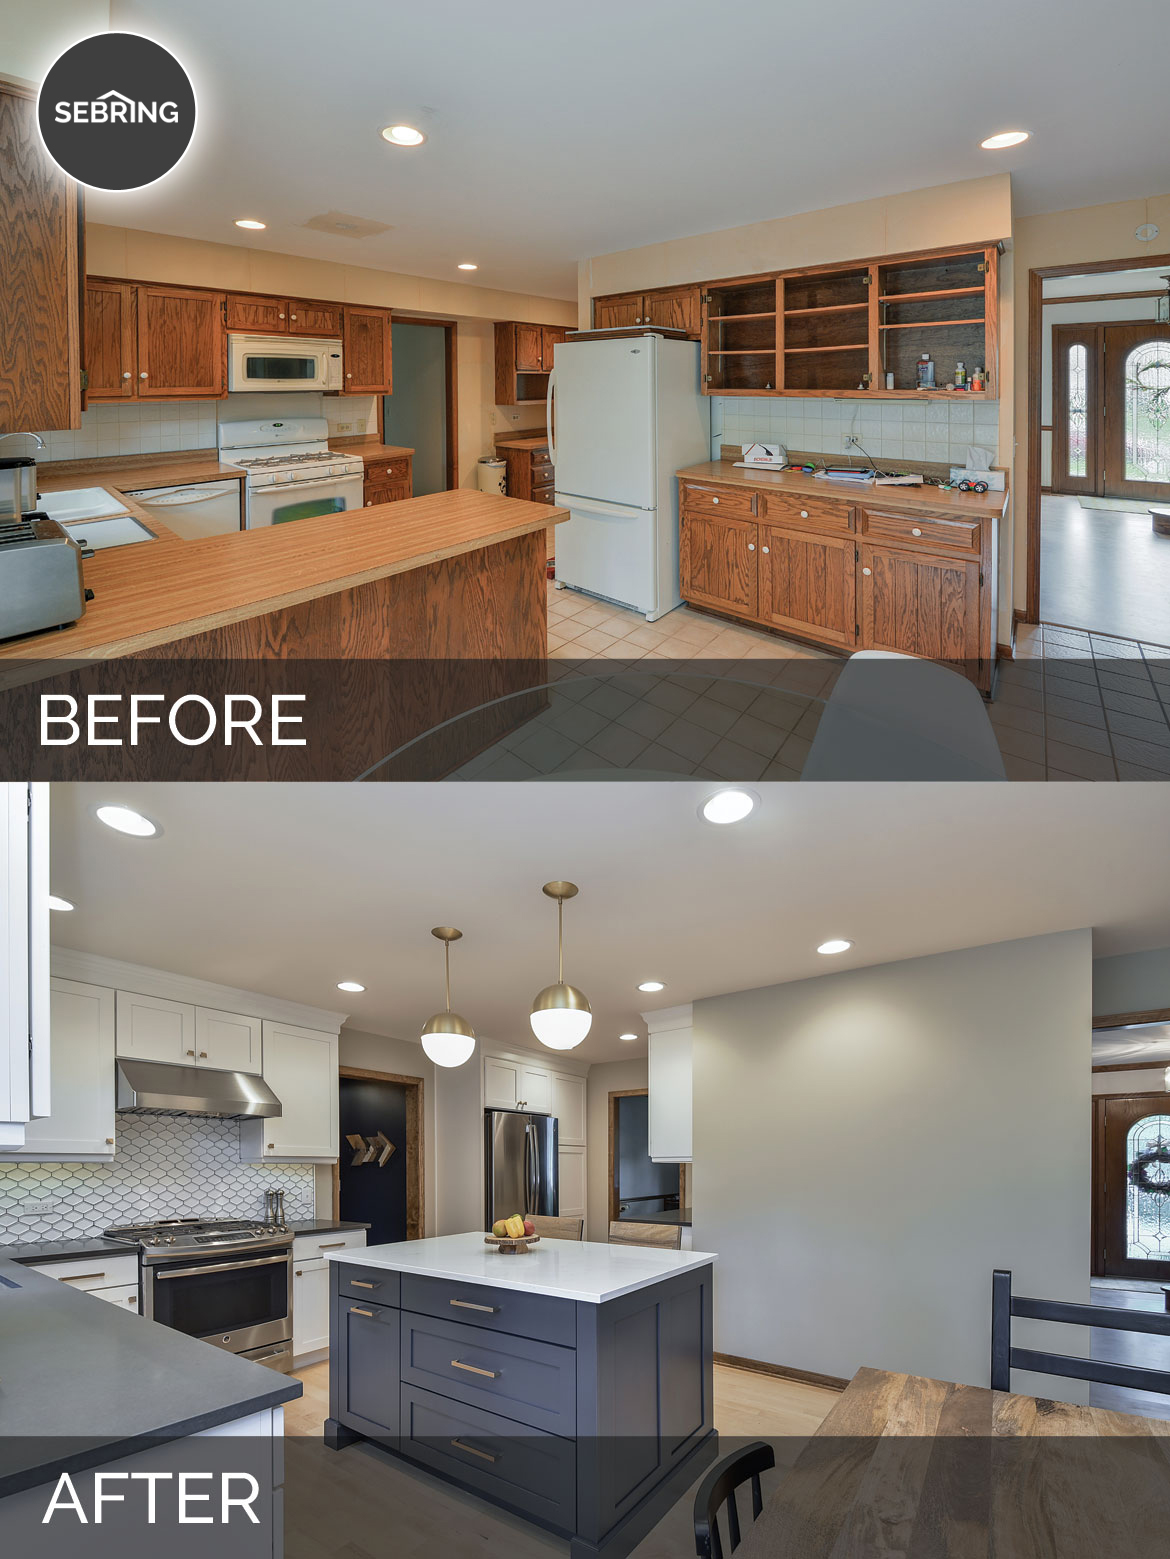 Justin Carina S Kitchen Before After Pictures Home Remodeling Contractors Sebring Design